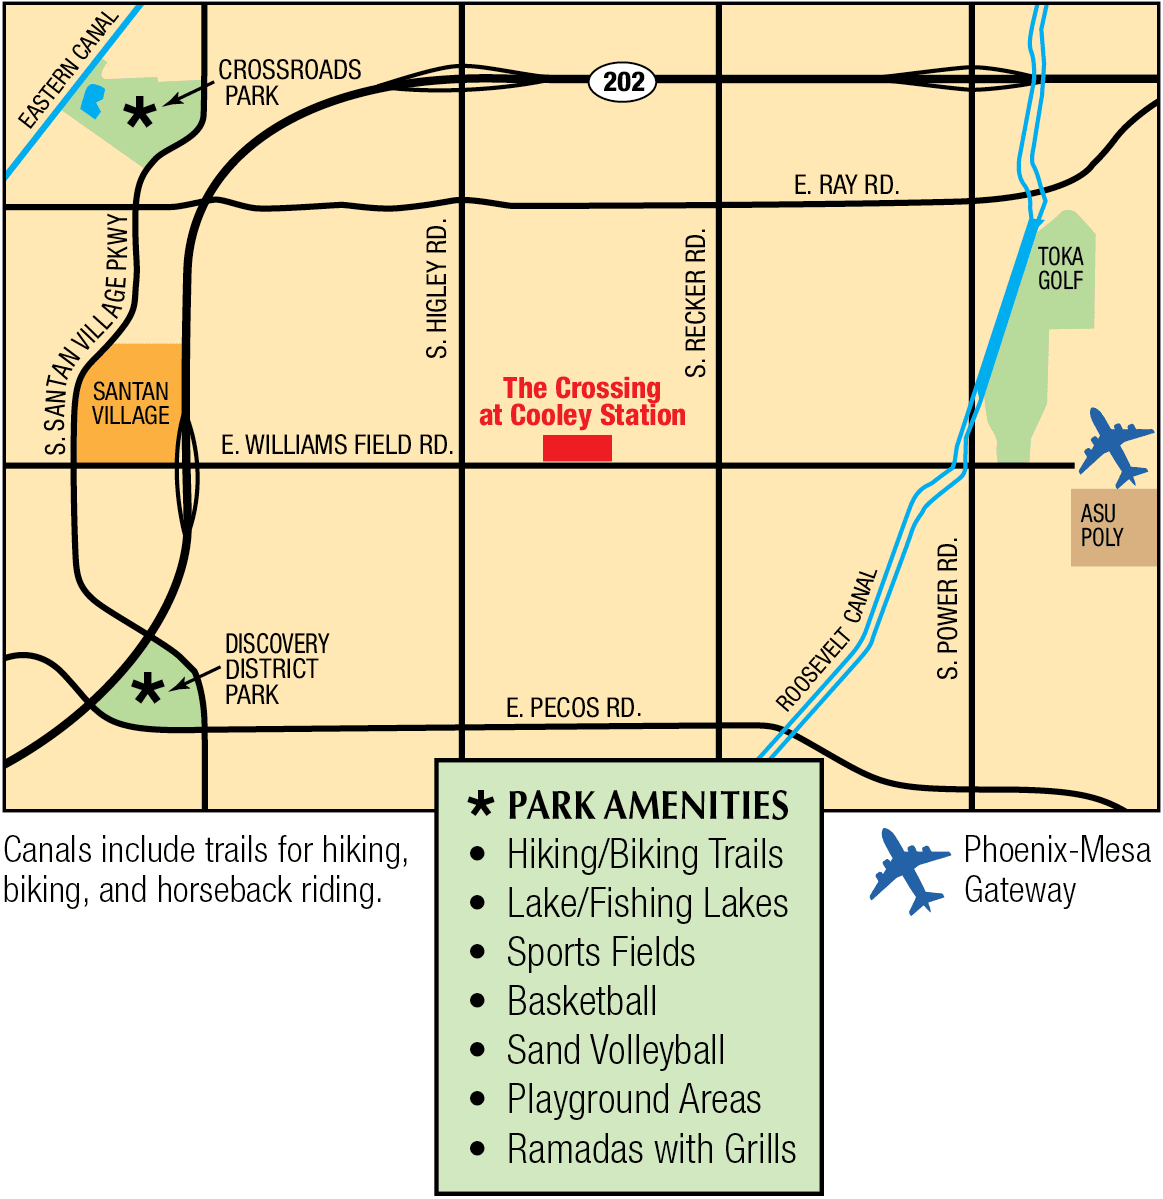 Map of The Crossing at Cooley Station